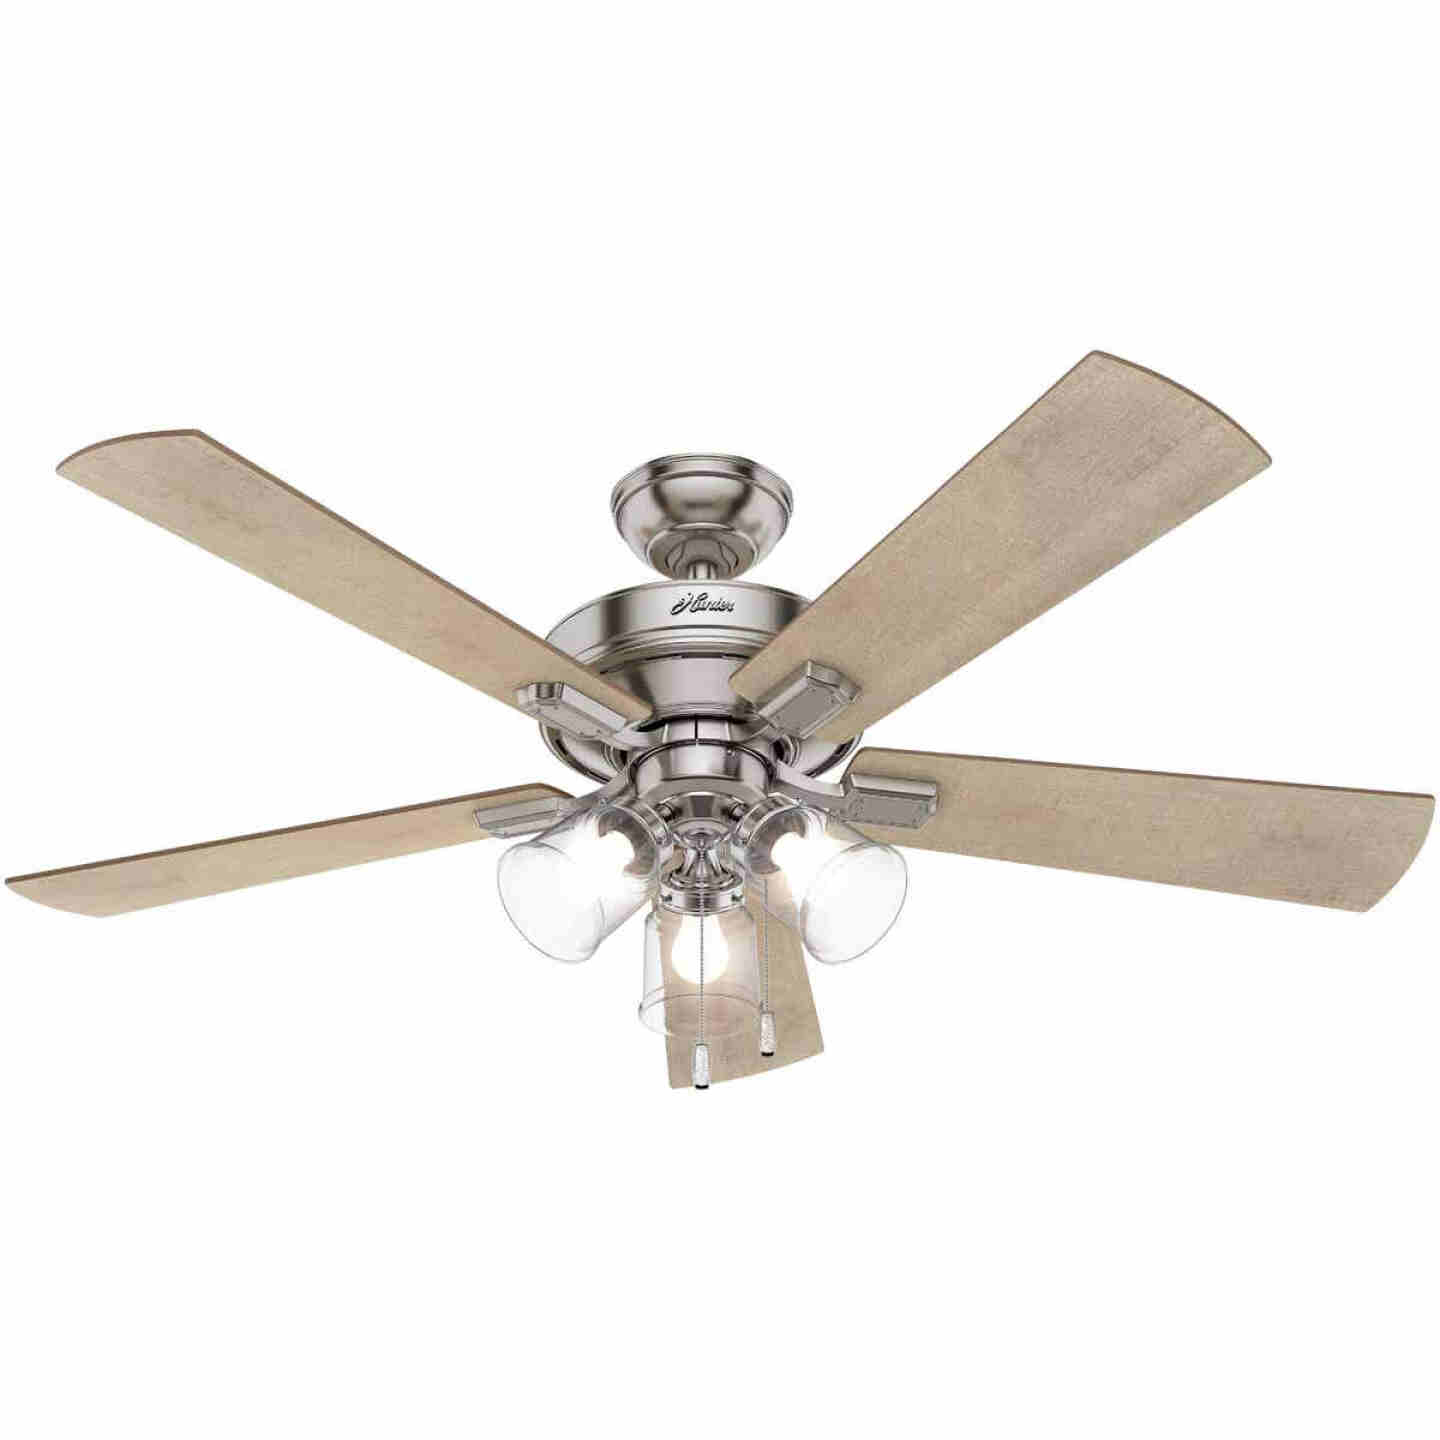 Hunter Crestfield 52 In. Brushed Nickel Ceiling Fan with Light Kit Image 1